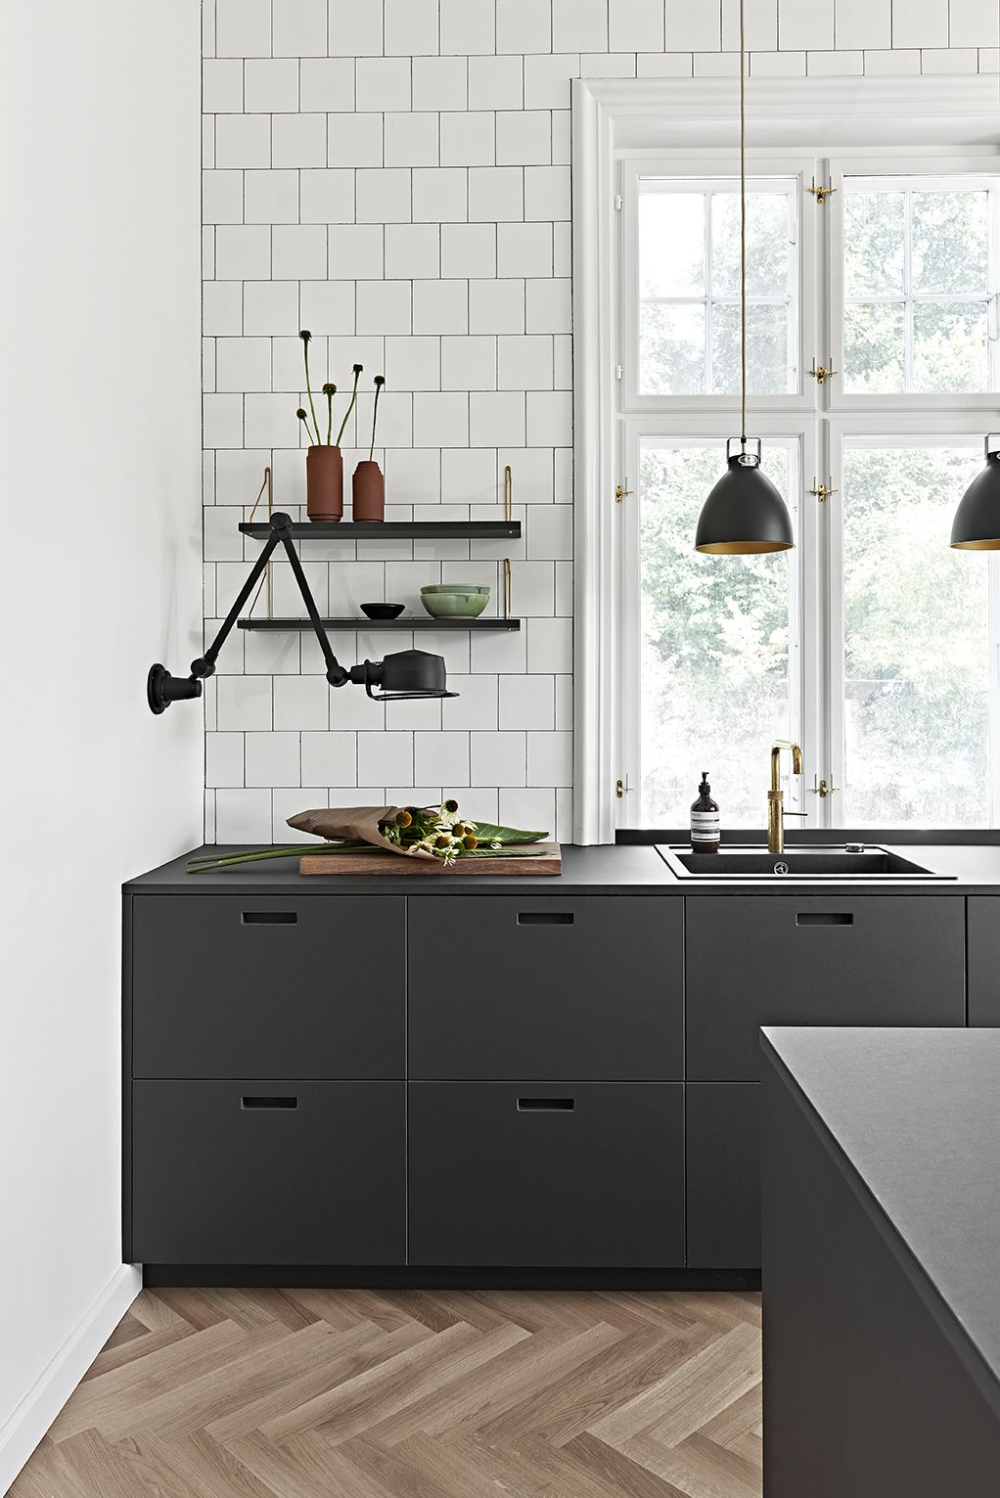 Photo of per i linoleum køkken fronter i dansk design fino a quando ikea hack #greykitcheni …